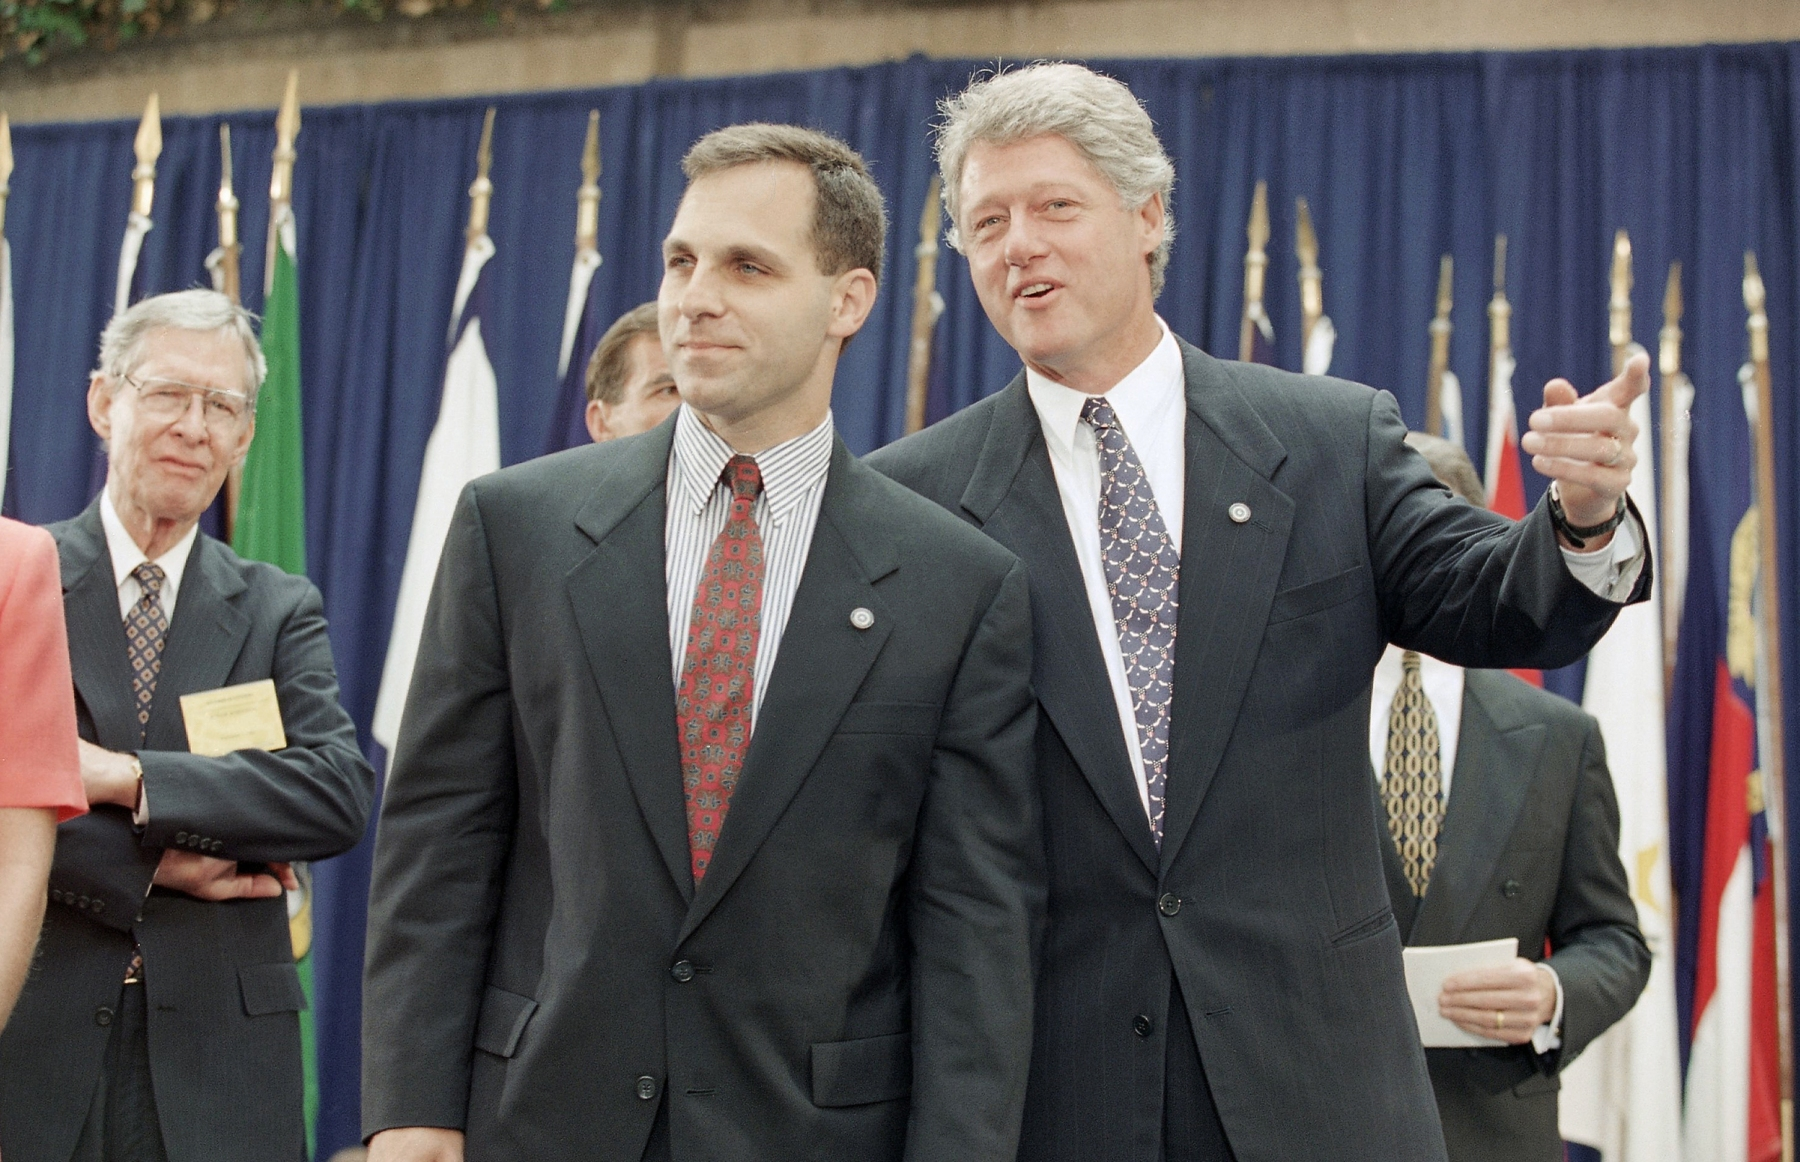 President Bill Clinton talks to FBI Director Louis Freeh during Freeh's swearing ceremony as director at FBI Headquarters in Washington on Sept. 1, 1993. (AP Photo/Wilfredo Lee)